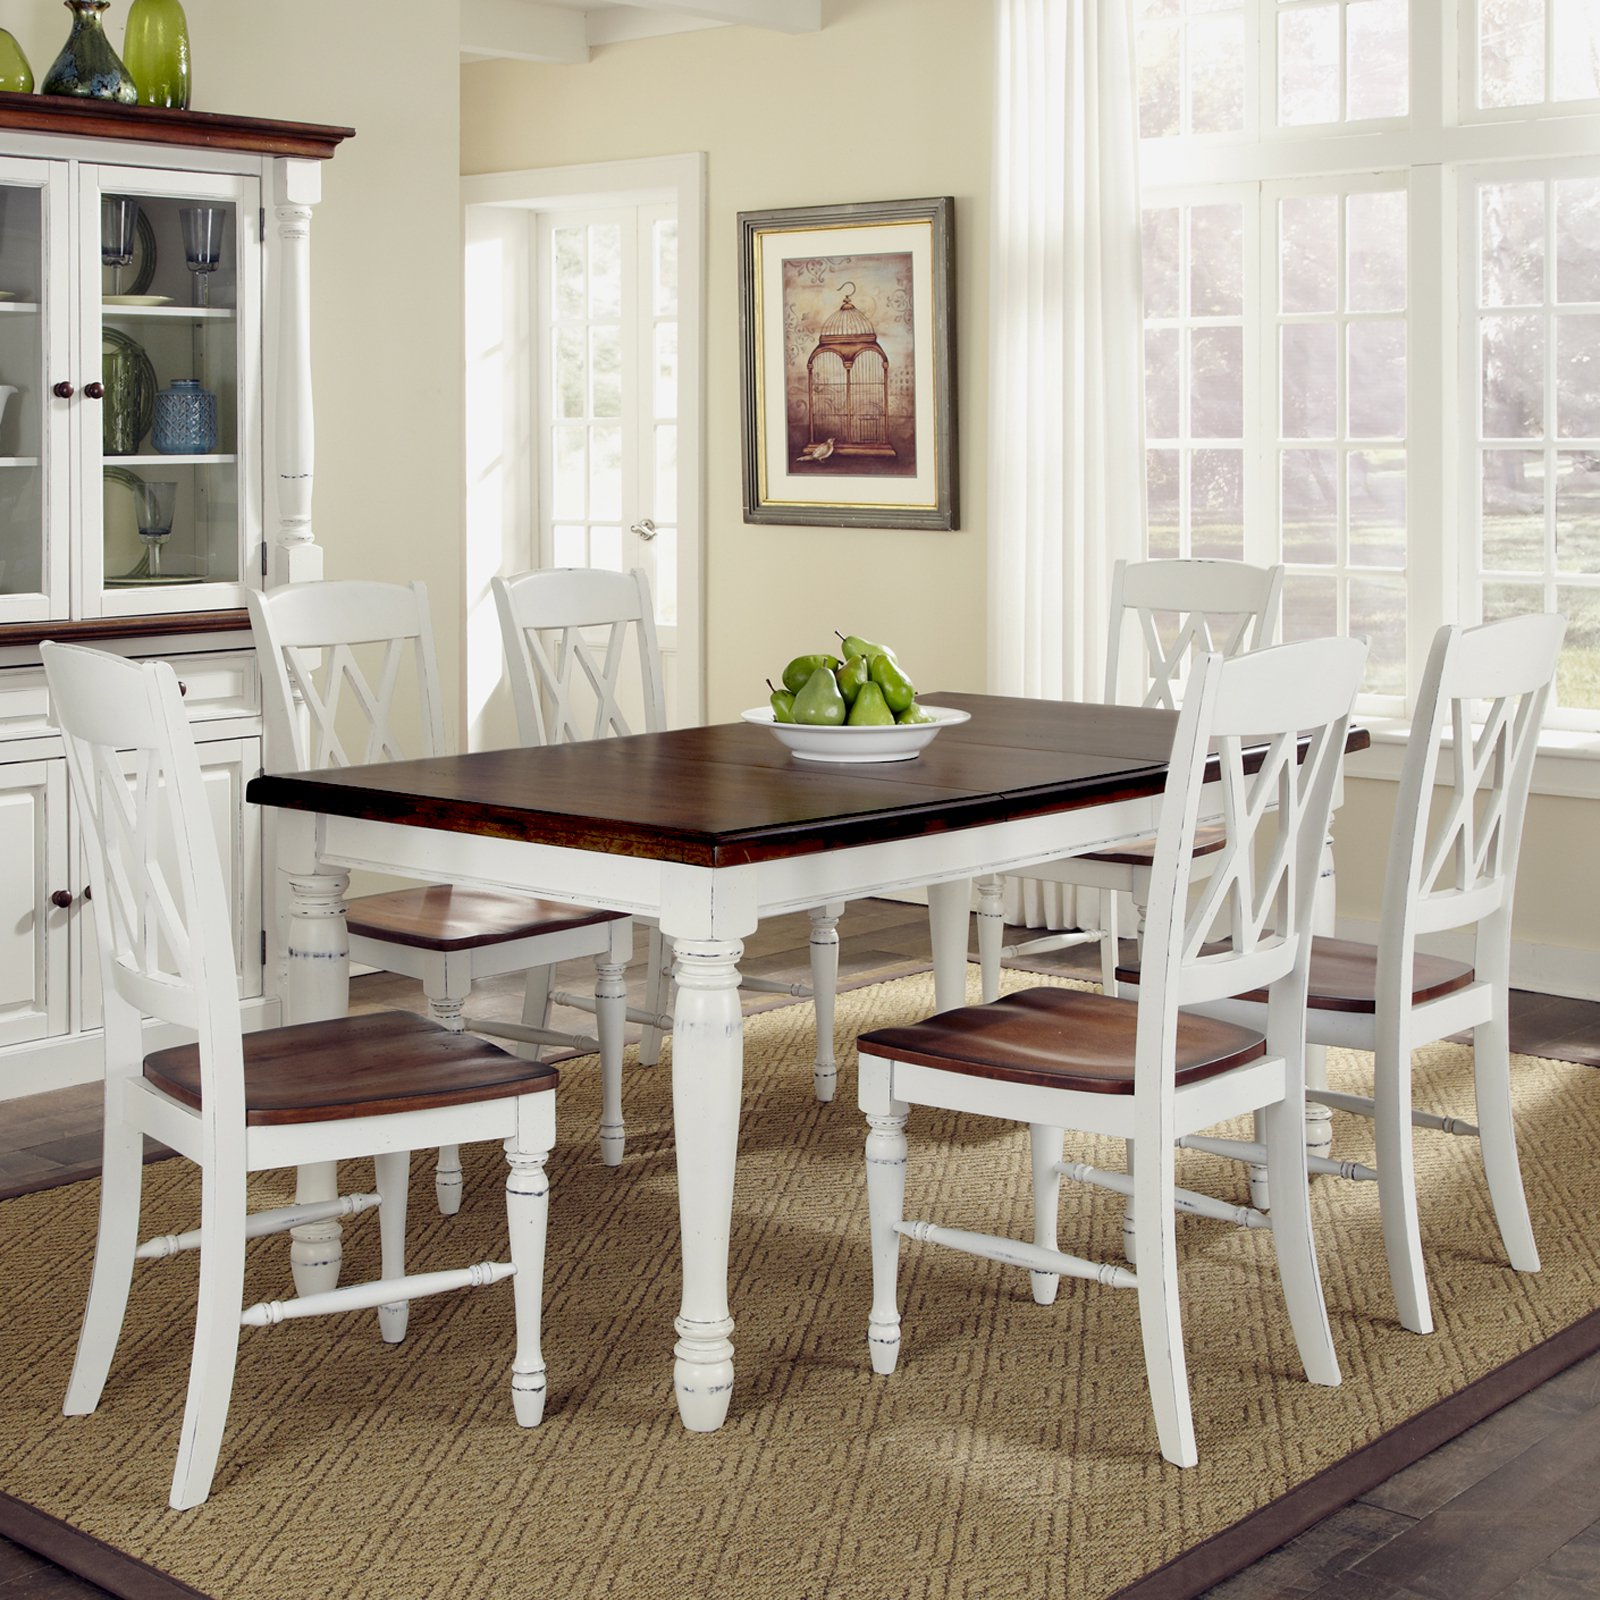 Home Styles Monarch Rectangular Dining Table and 6 Double X-Back ...